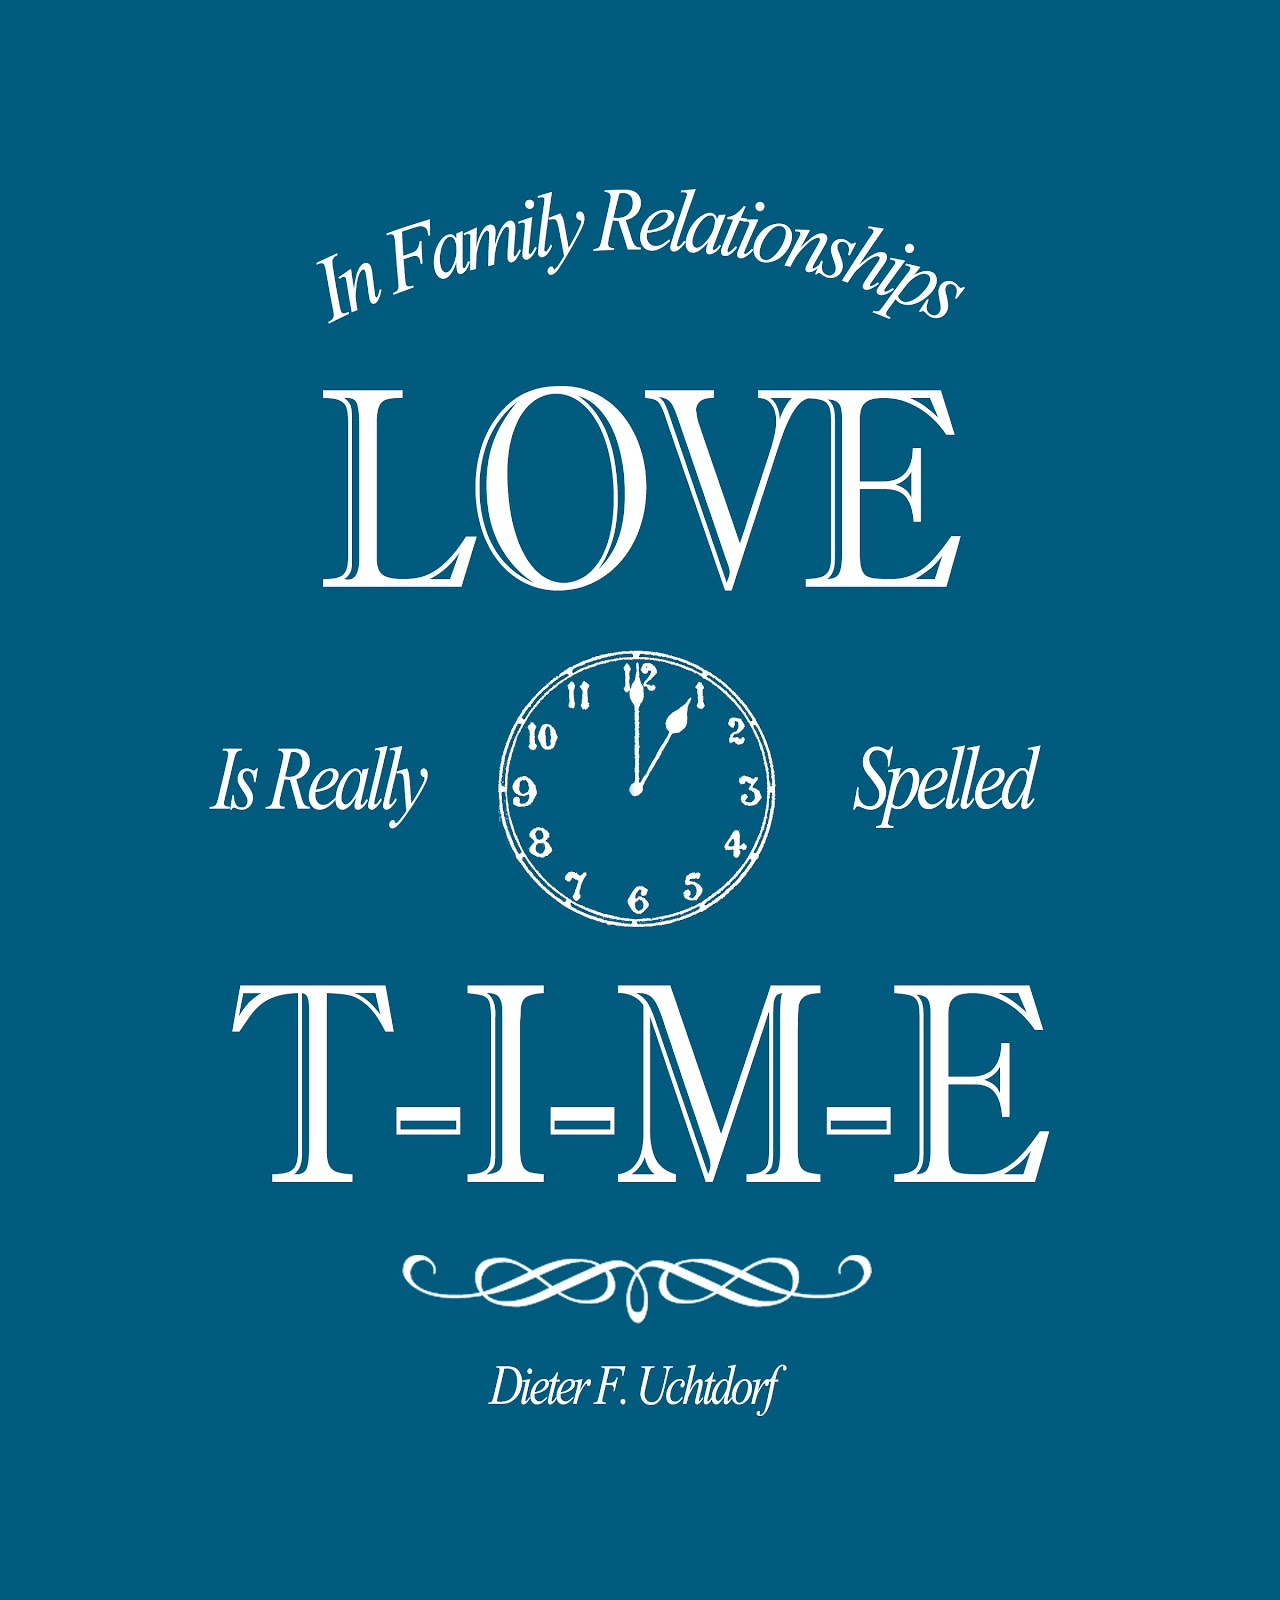 Quotes About Love Relationships: Family Priority Quotes. QuotesGram